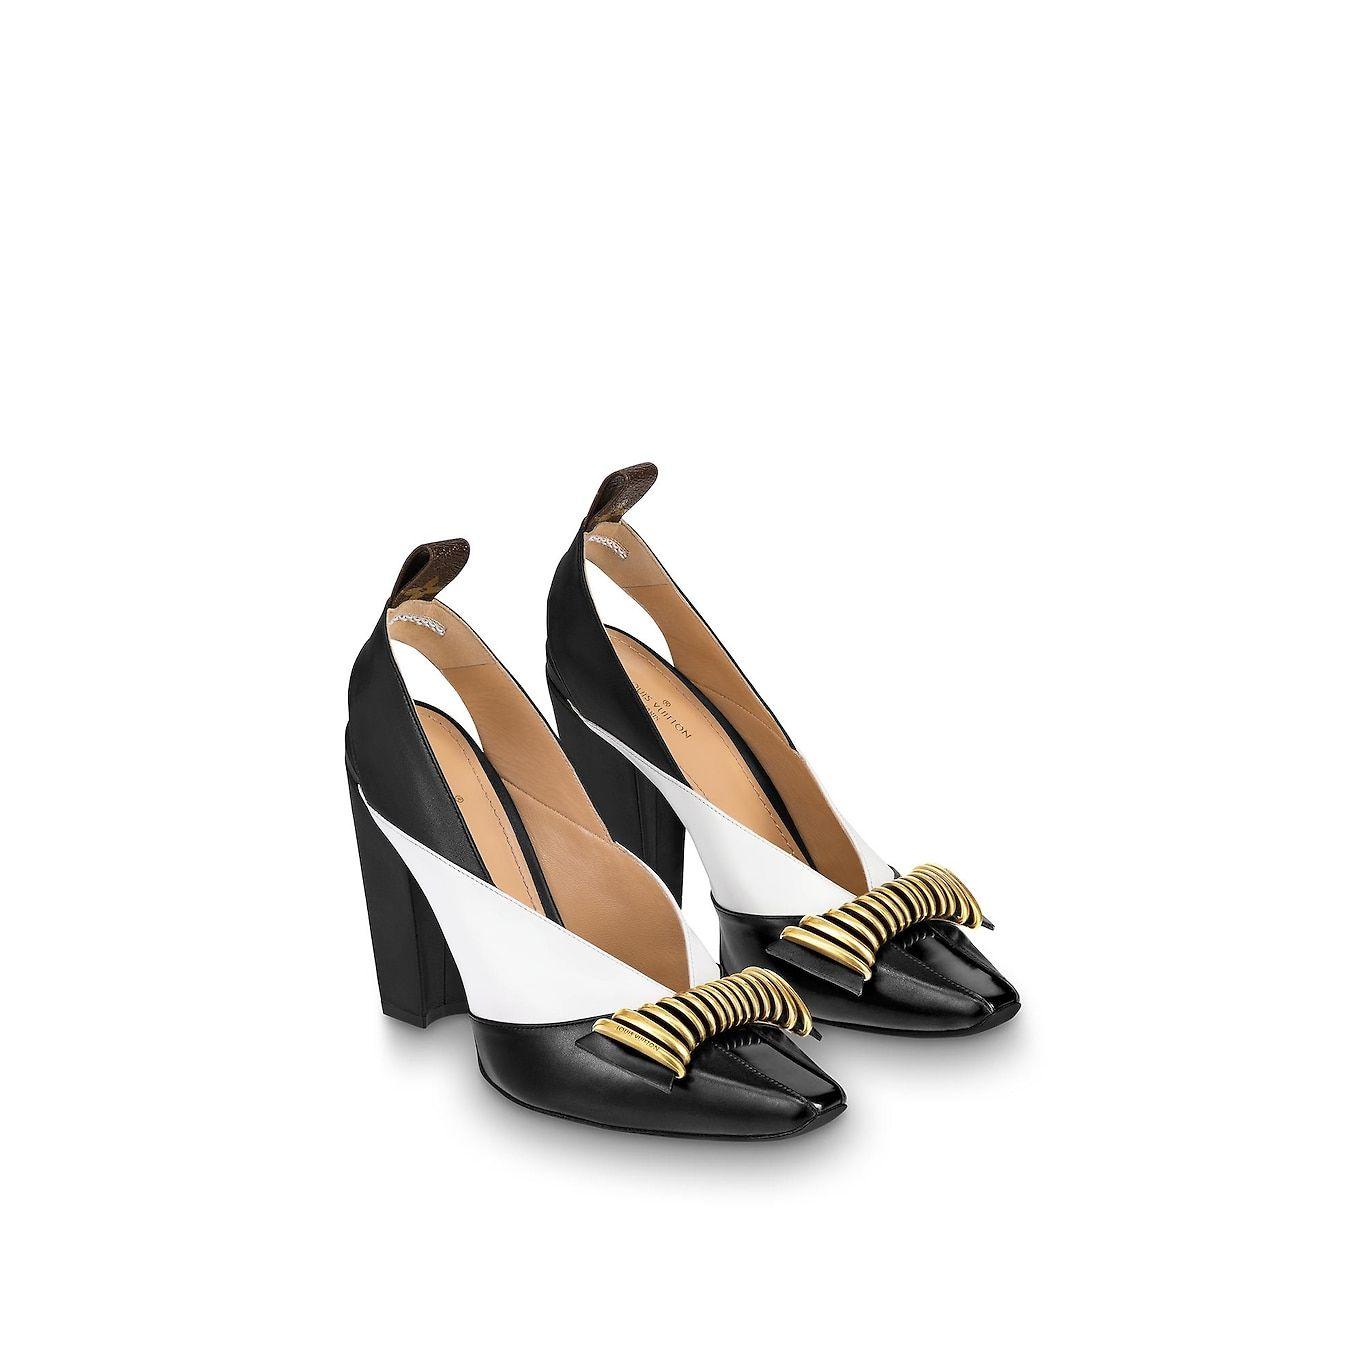 2dfe16abbfb View 2 - SHOES ALL COLLECTIONS Headline Slingback Pump